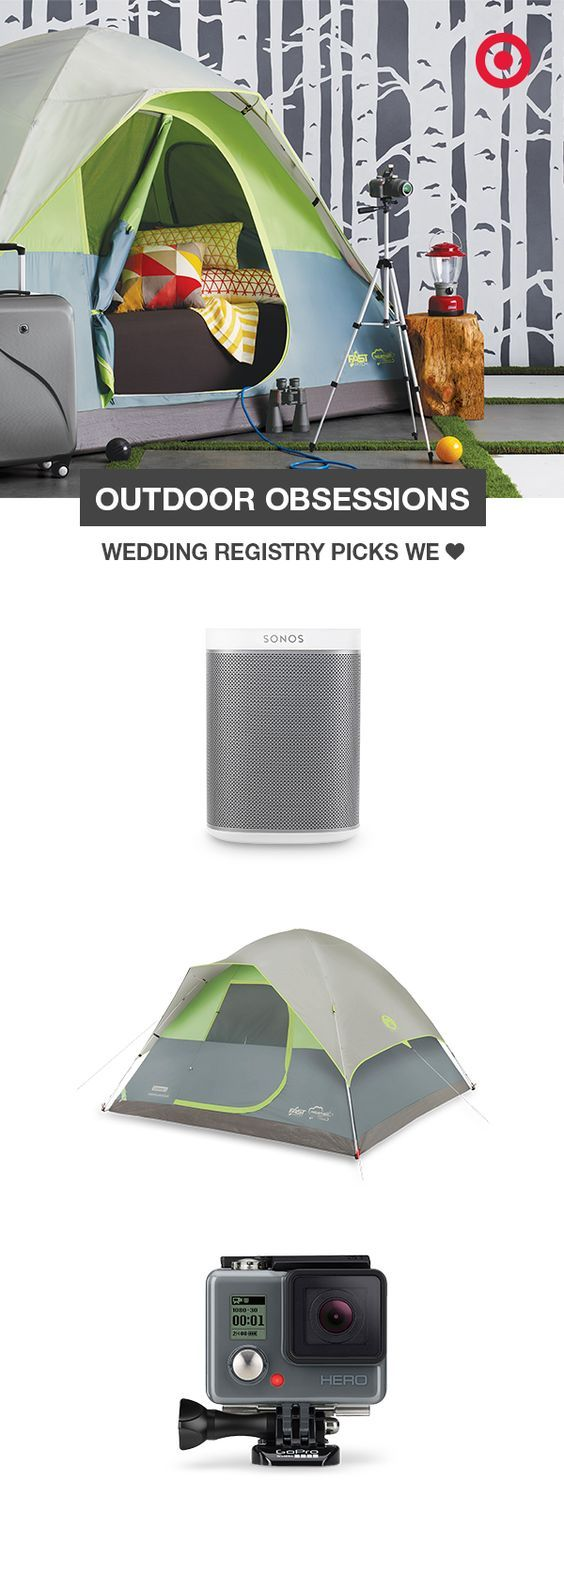 Wedding registry must-haves for the adventuresome couple: a Sonos Play:1 to enjoy your travel playlist from anywhere. A Coleman Fast Pitch 5-person tent that sets up in a flash. And a GoPro Hero camera to capture every single heart-stopping, thrill-packed moment. #outdoor #tent #camping #outdoors #weddinggiftideas #giftideas #summer #spring #outdoor #summerideas #affiliate #target